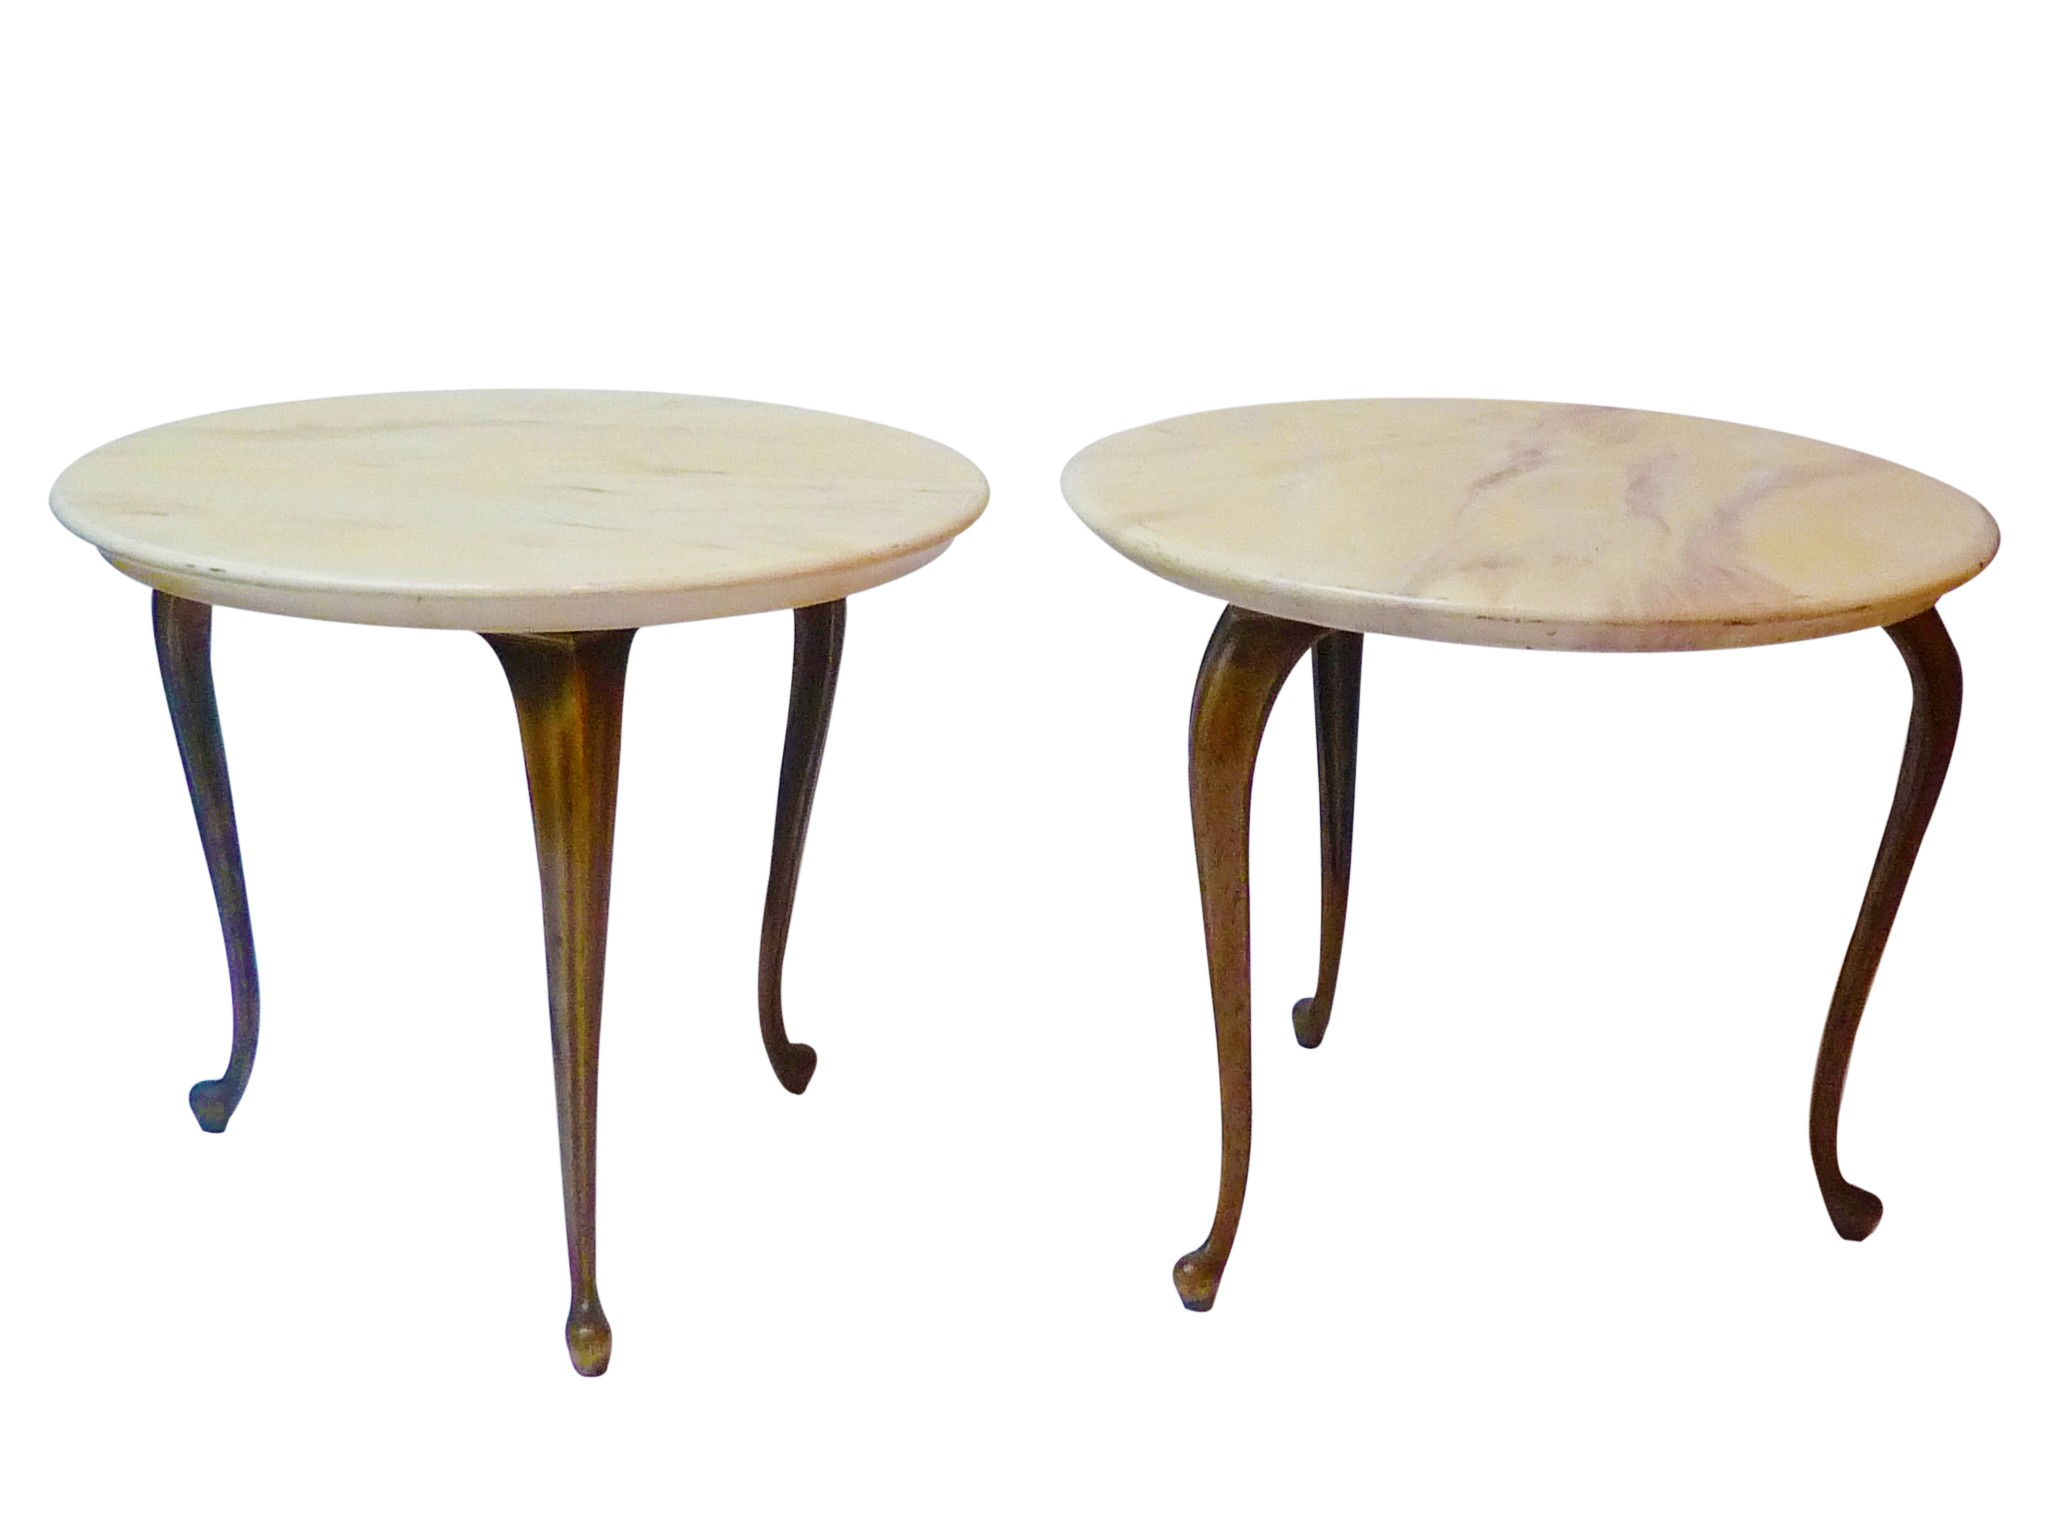 the perfect free small end table with marble top gallery jockboymusic antique round three wooden curved legs cool john lewis console beach style tables ethan allen hutch value